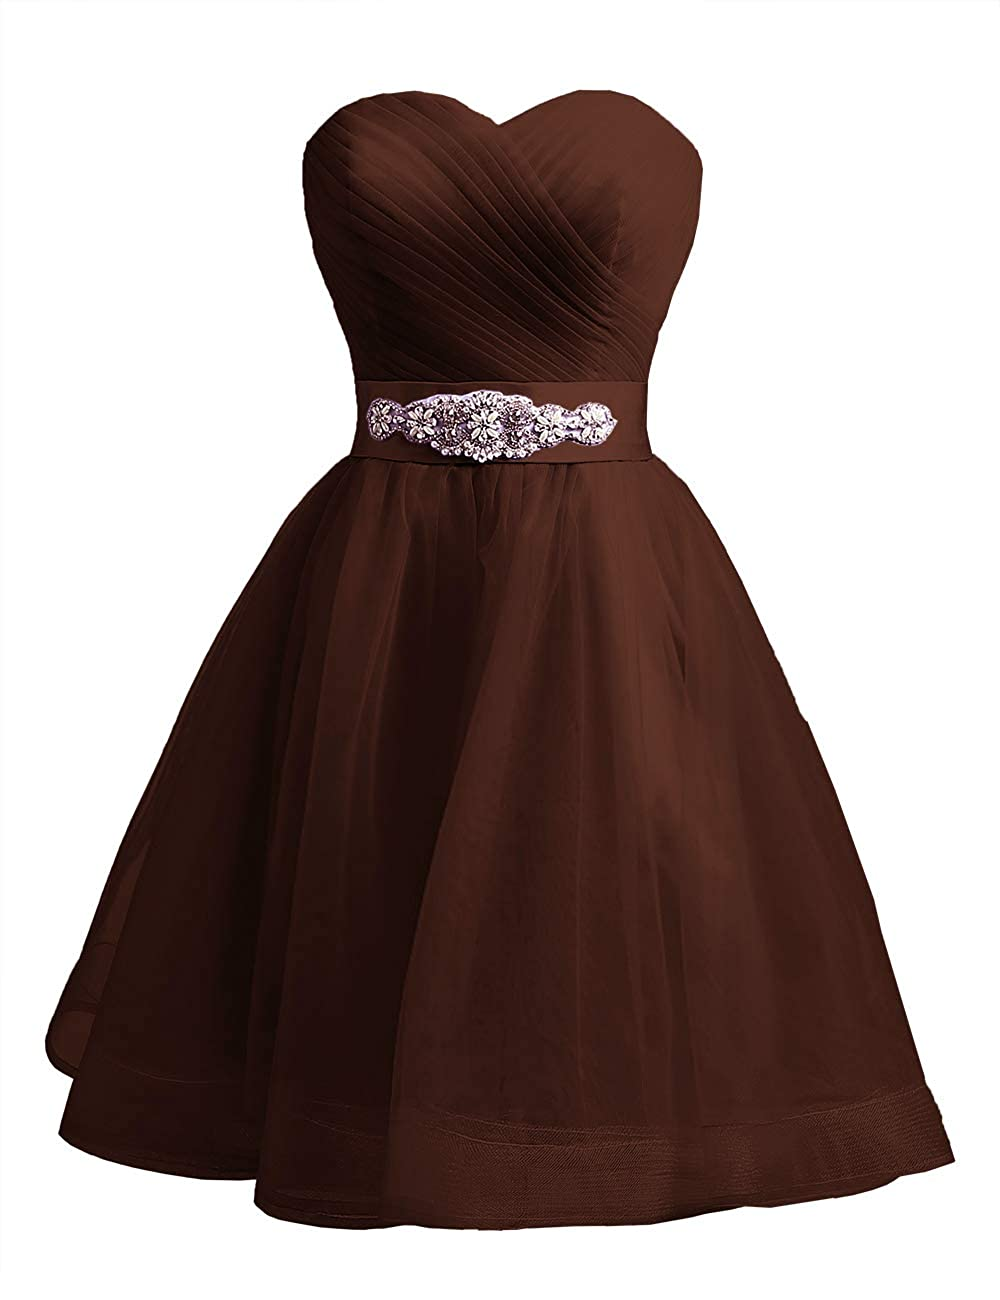 Chocolate Uther Sweetheart Beaded ALine Homecoming Dress Short Cocktail Dress Tulle Porm Gown